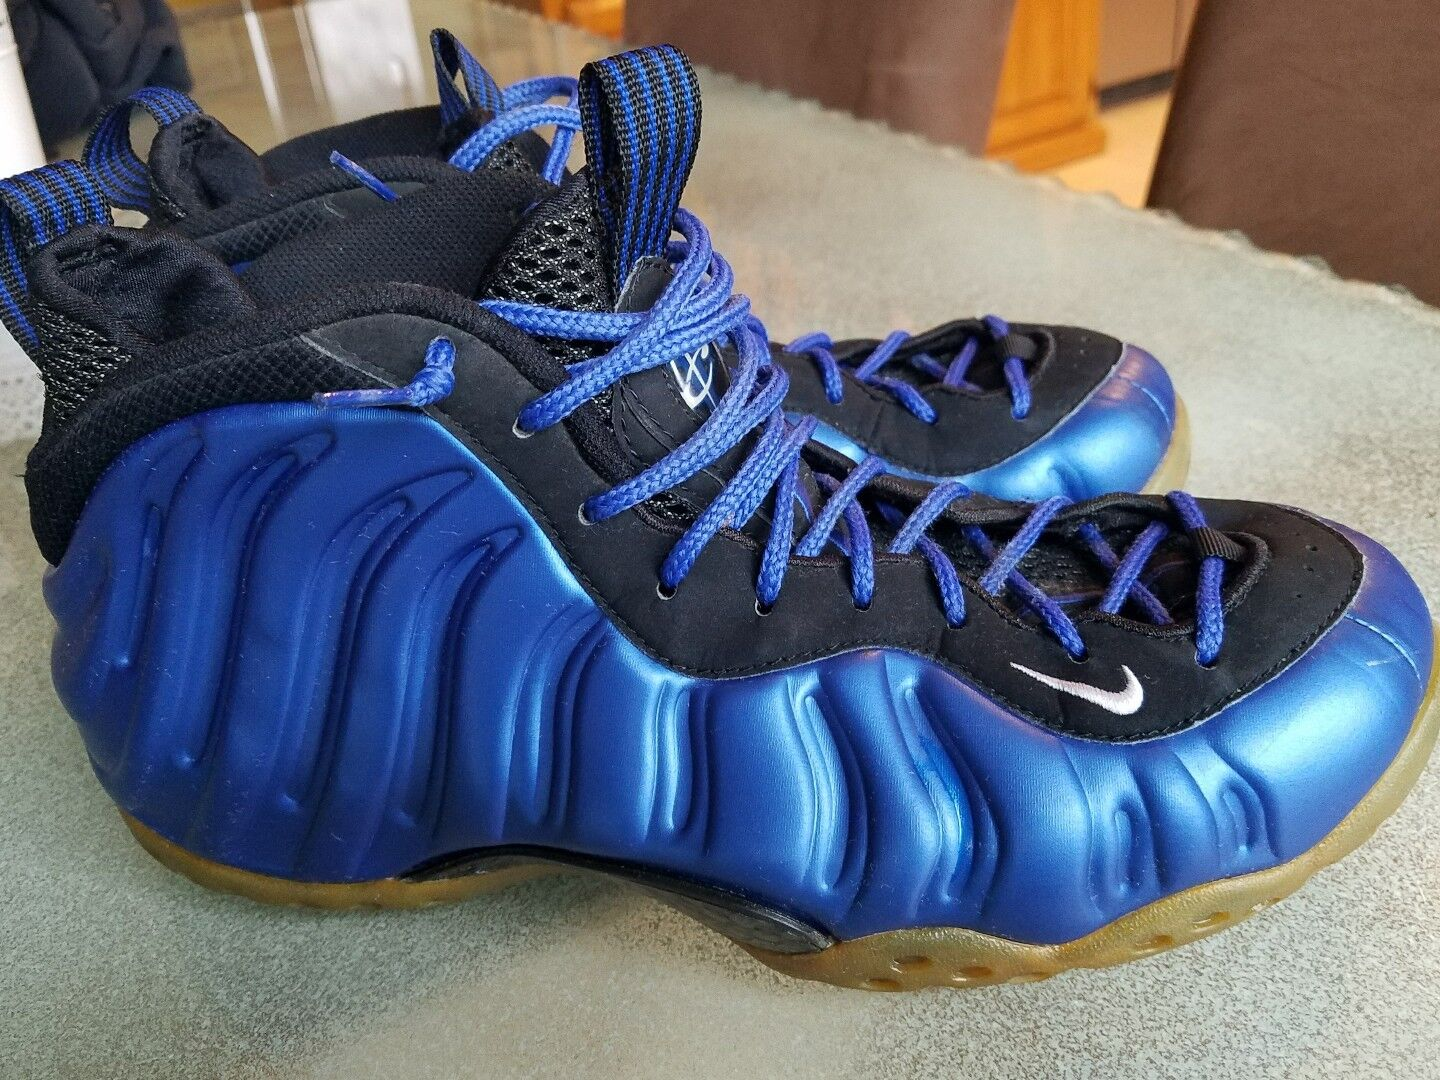 Vintage 1997 Nike Air Foamposite One 1 Mens 8.5 Royal bluee Galaxy 830017 511 00